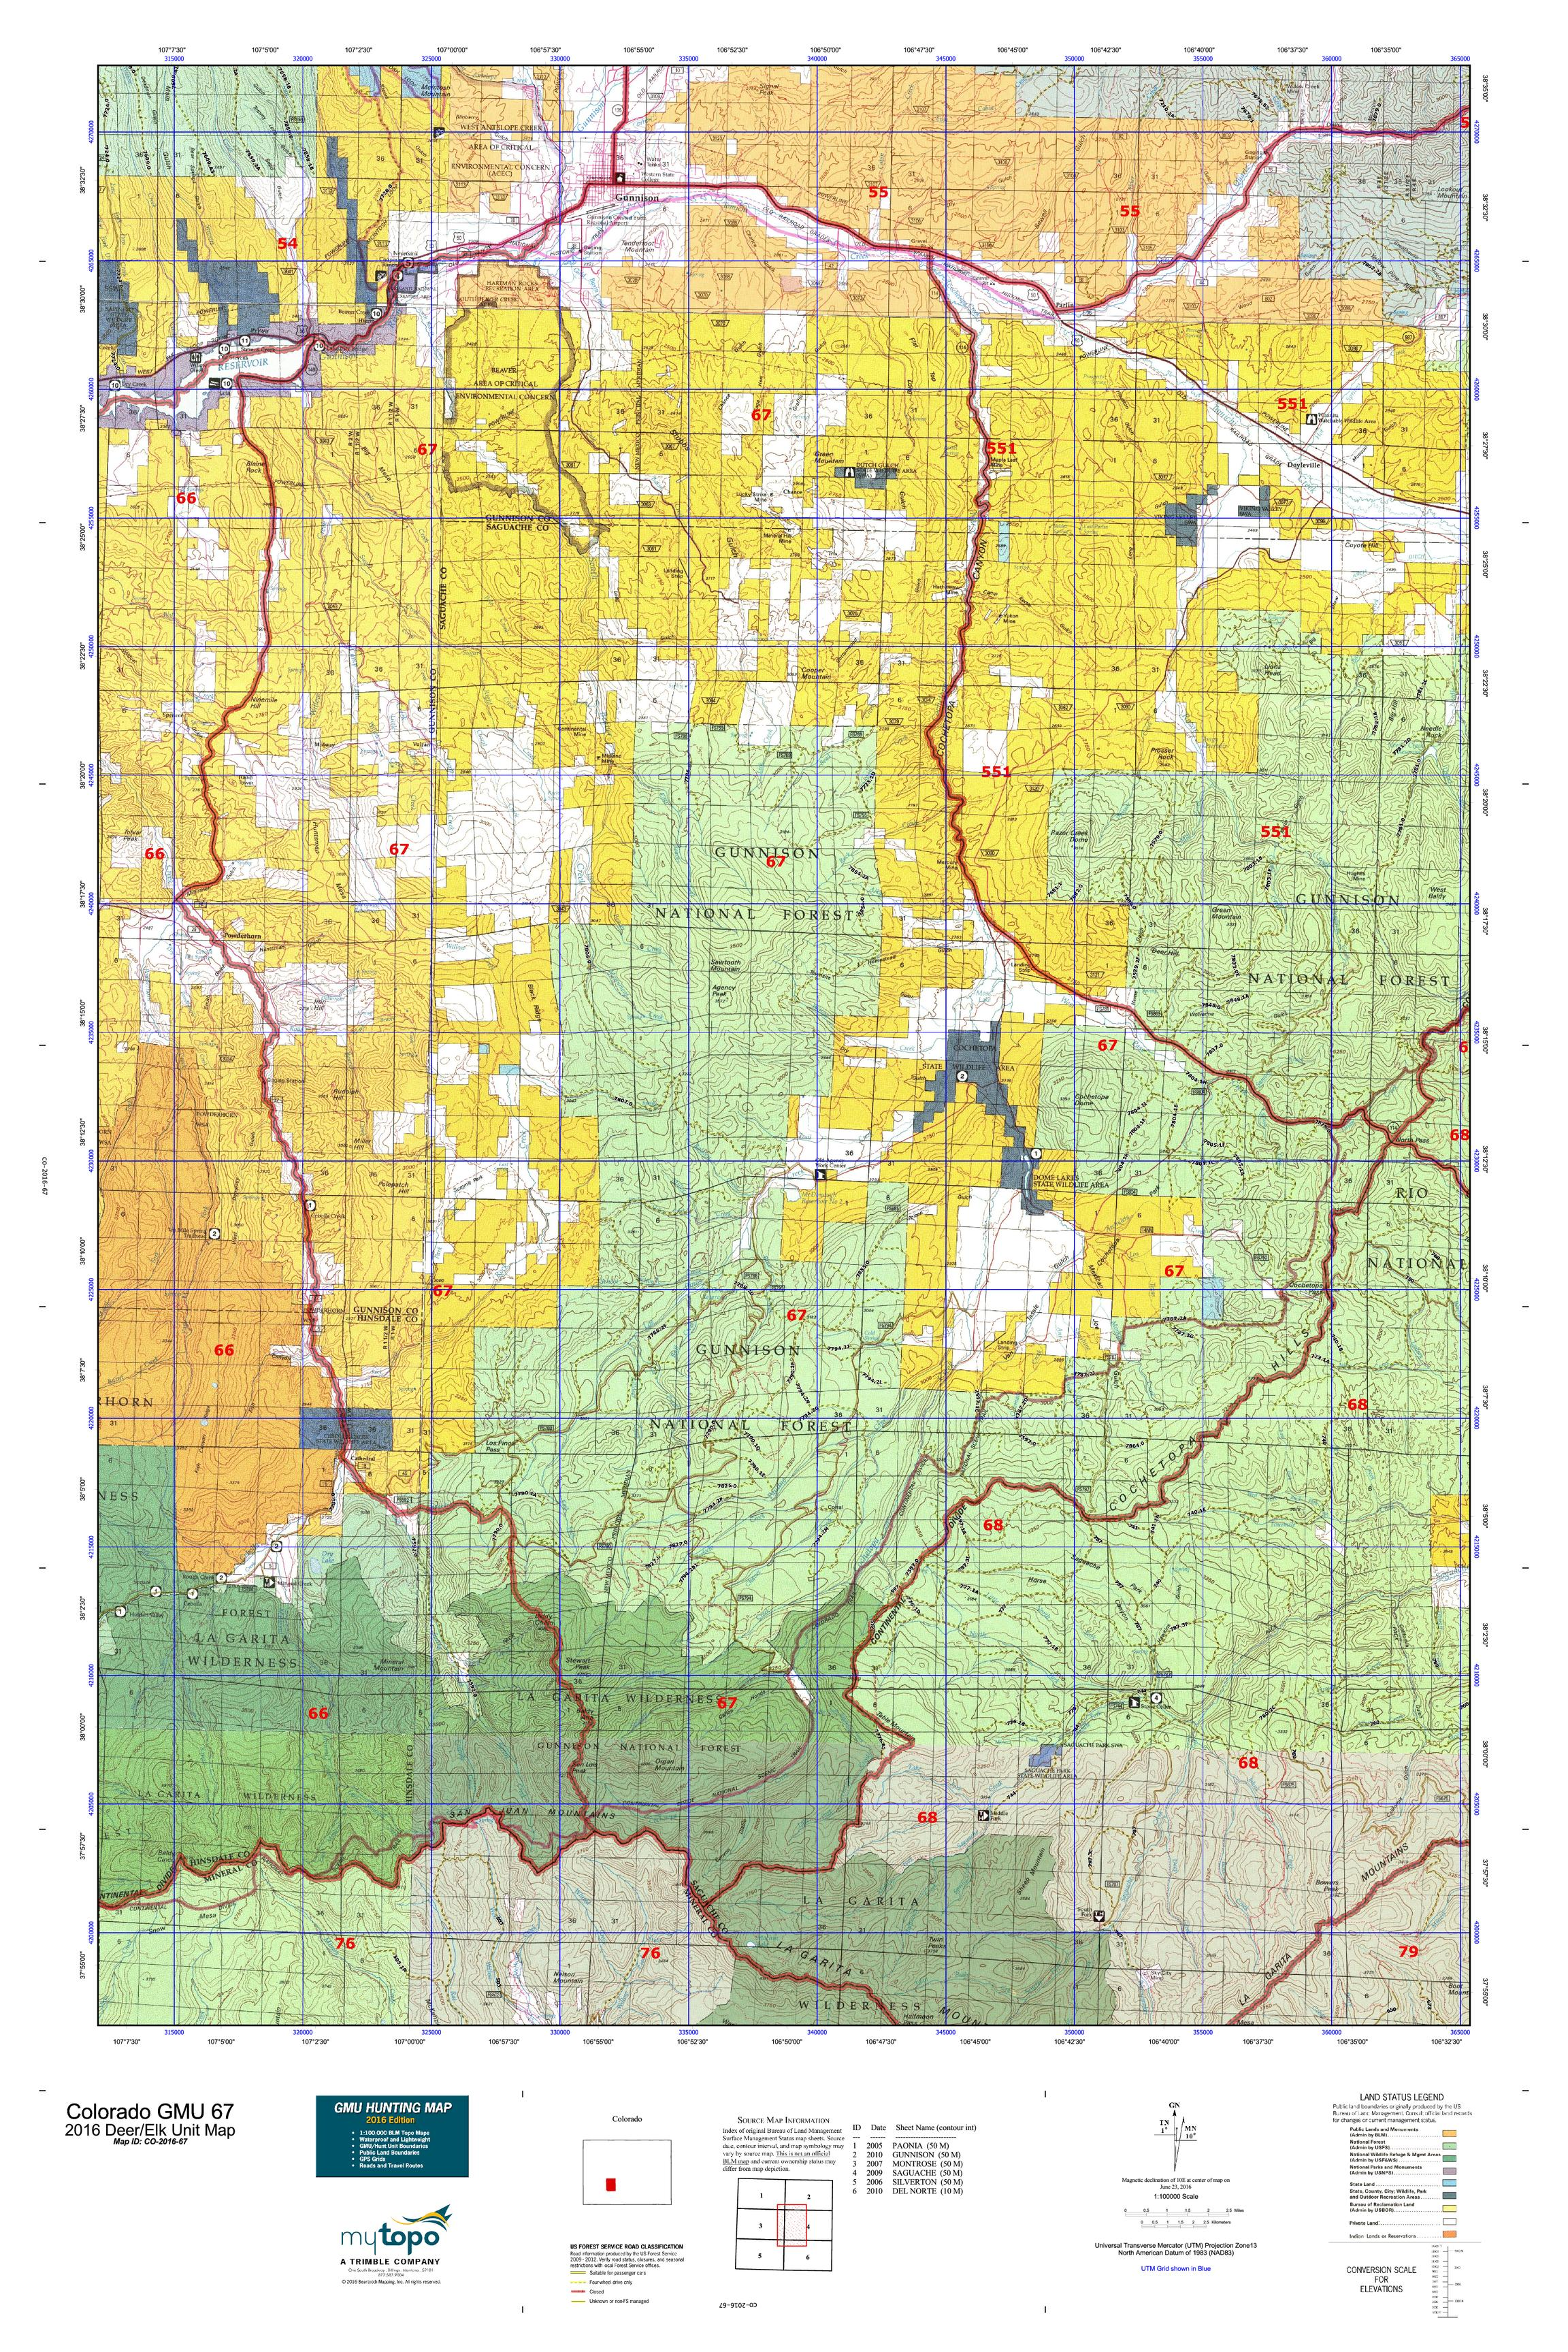 blm land map colorado with Hunt Area Unit on Maps Boundary Modifications Bears Ears And Grand Staircase Escalante National Monuments as well Vermilion Cliffs National Monument likewise Index besides California Trail Byway moreover WildernessAreaMap.